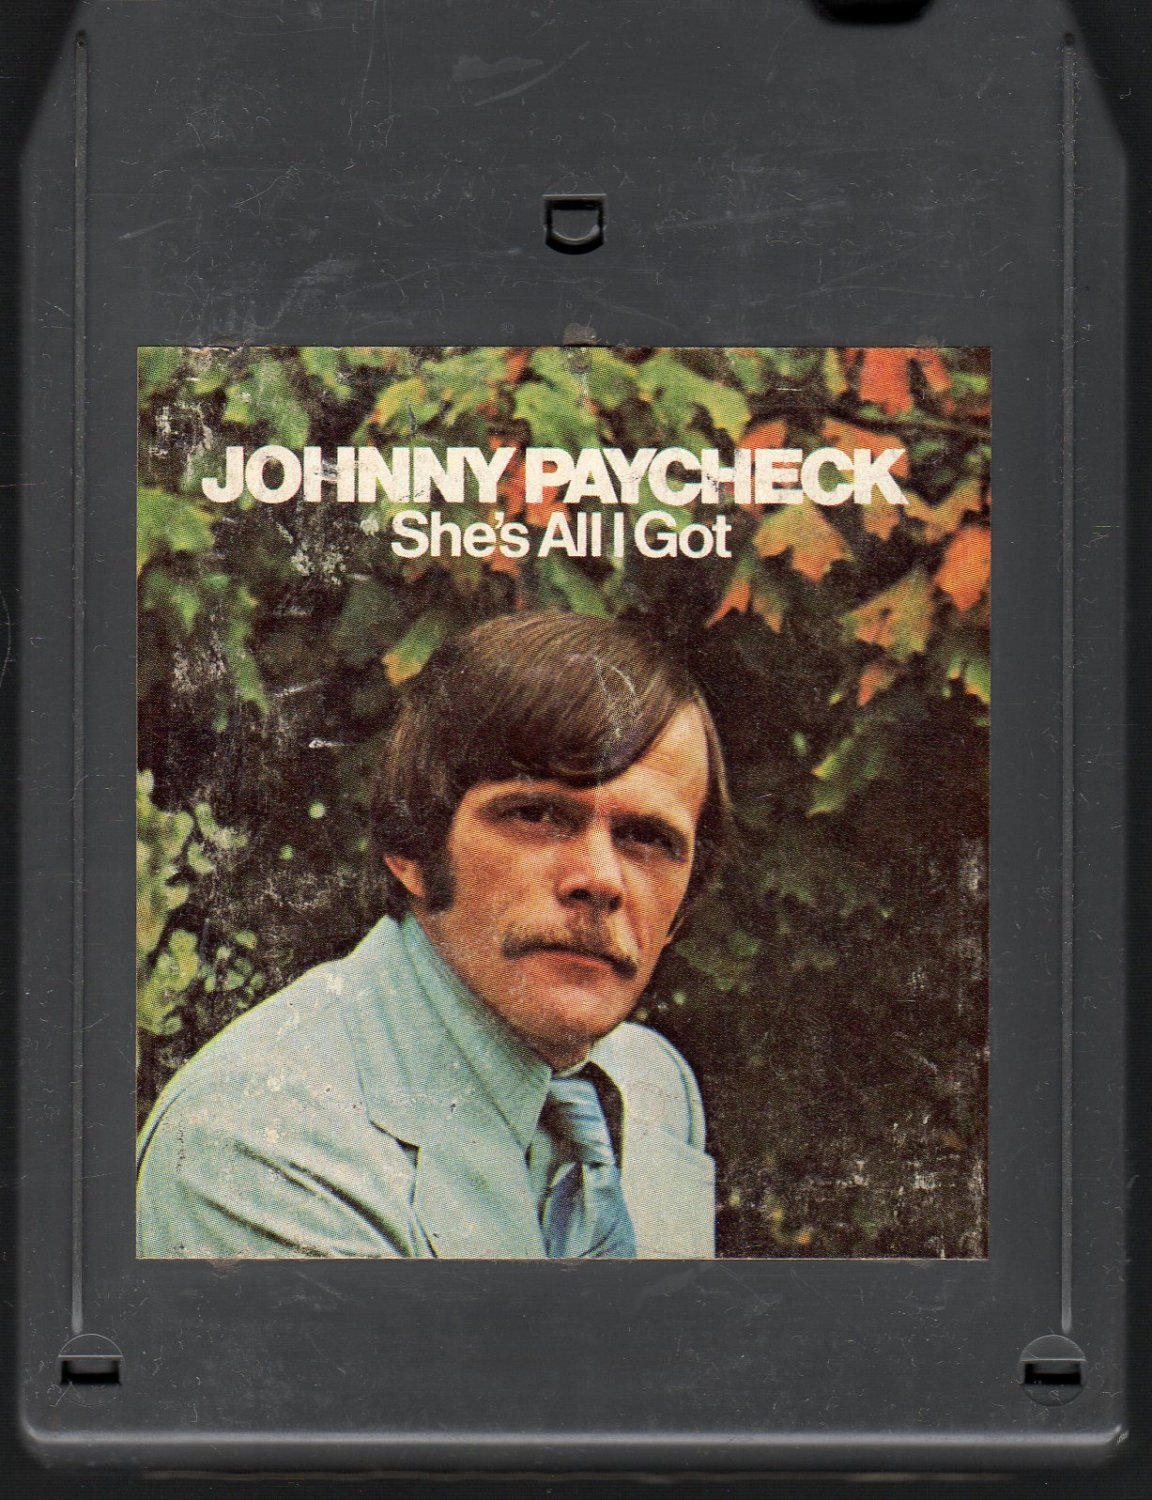 Johnny Paycheck - She's All I Got A45 8-track tape